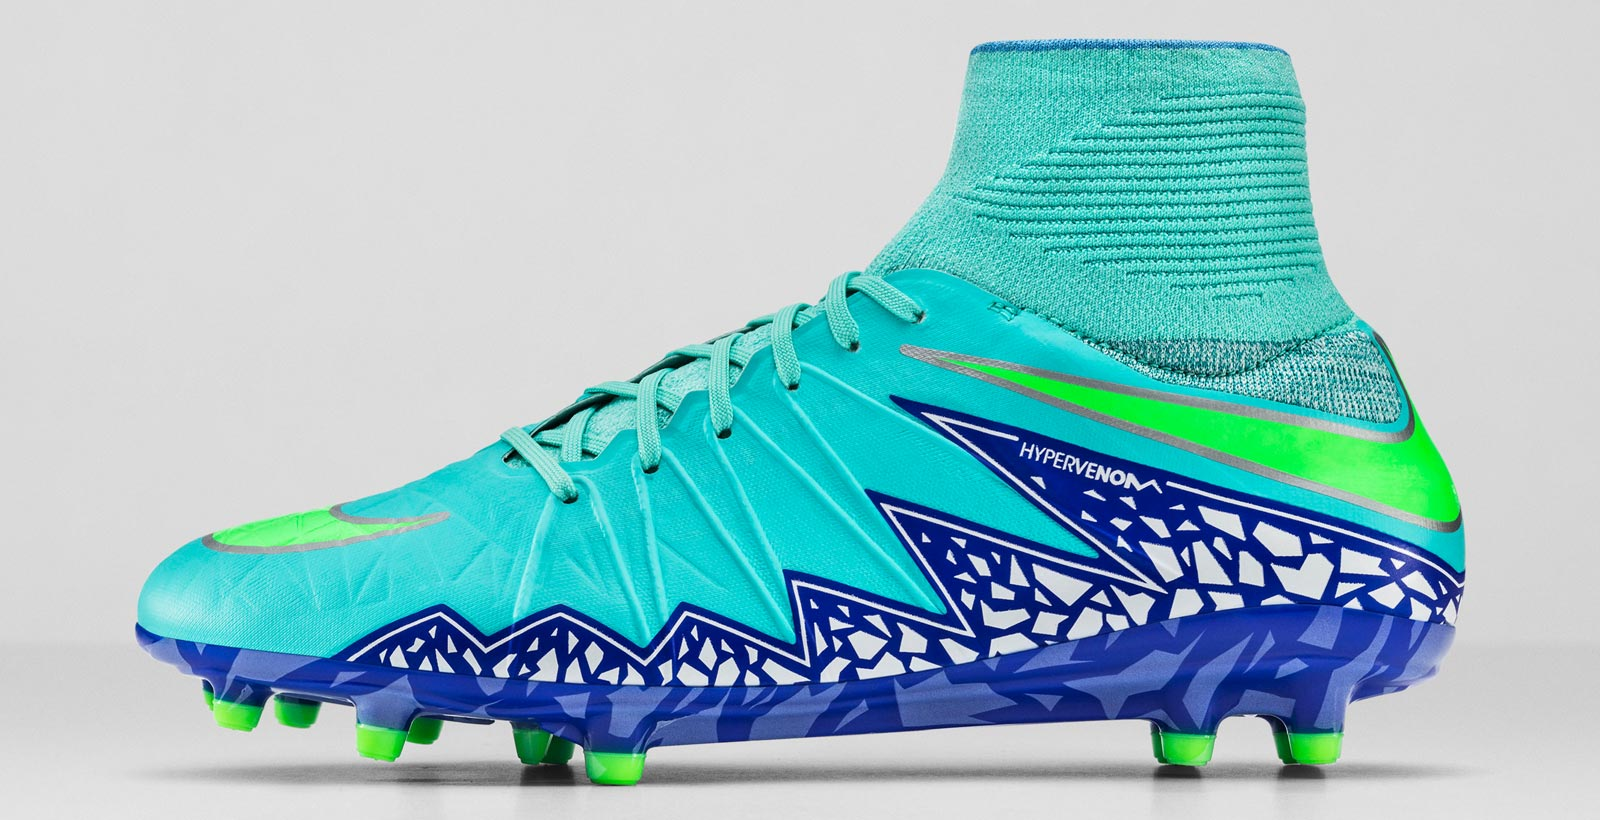 Luxury Nike Soccer Boots 2014 Nike Presents The New Mercurial Superfly Soccer